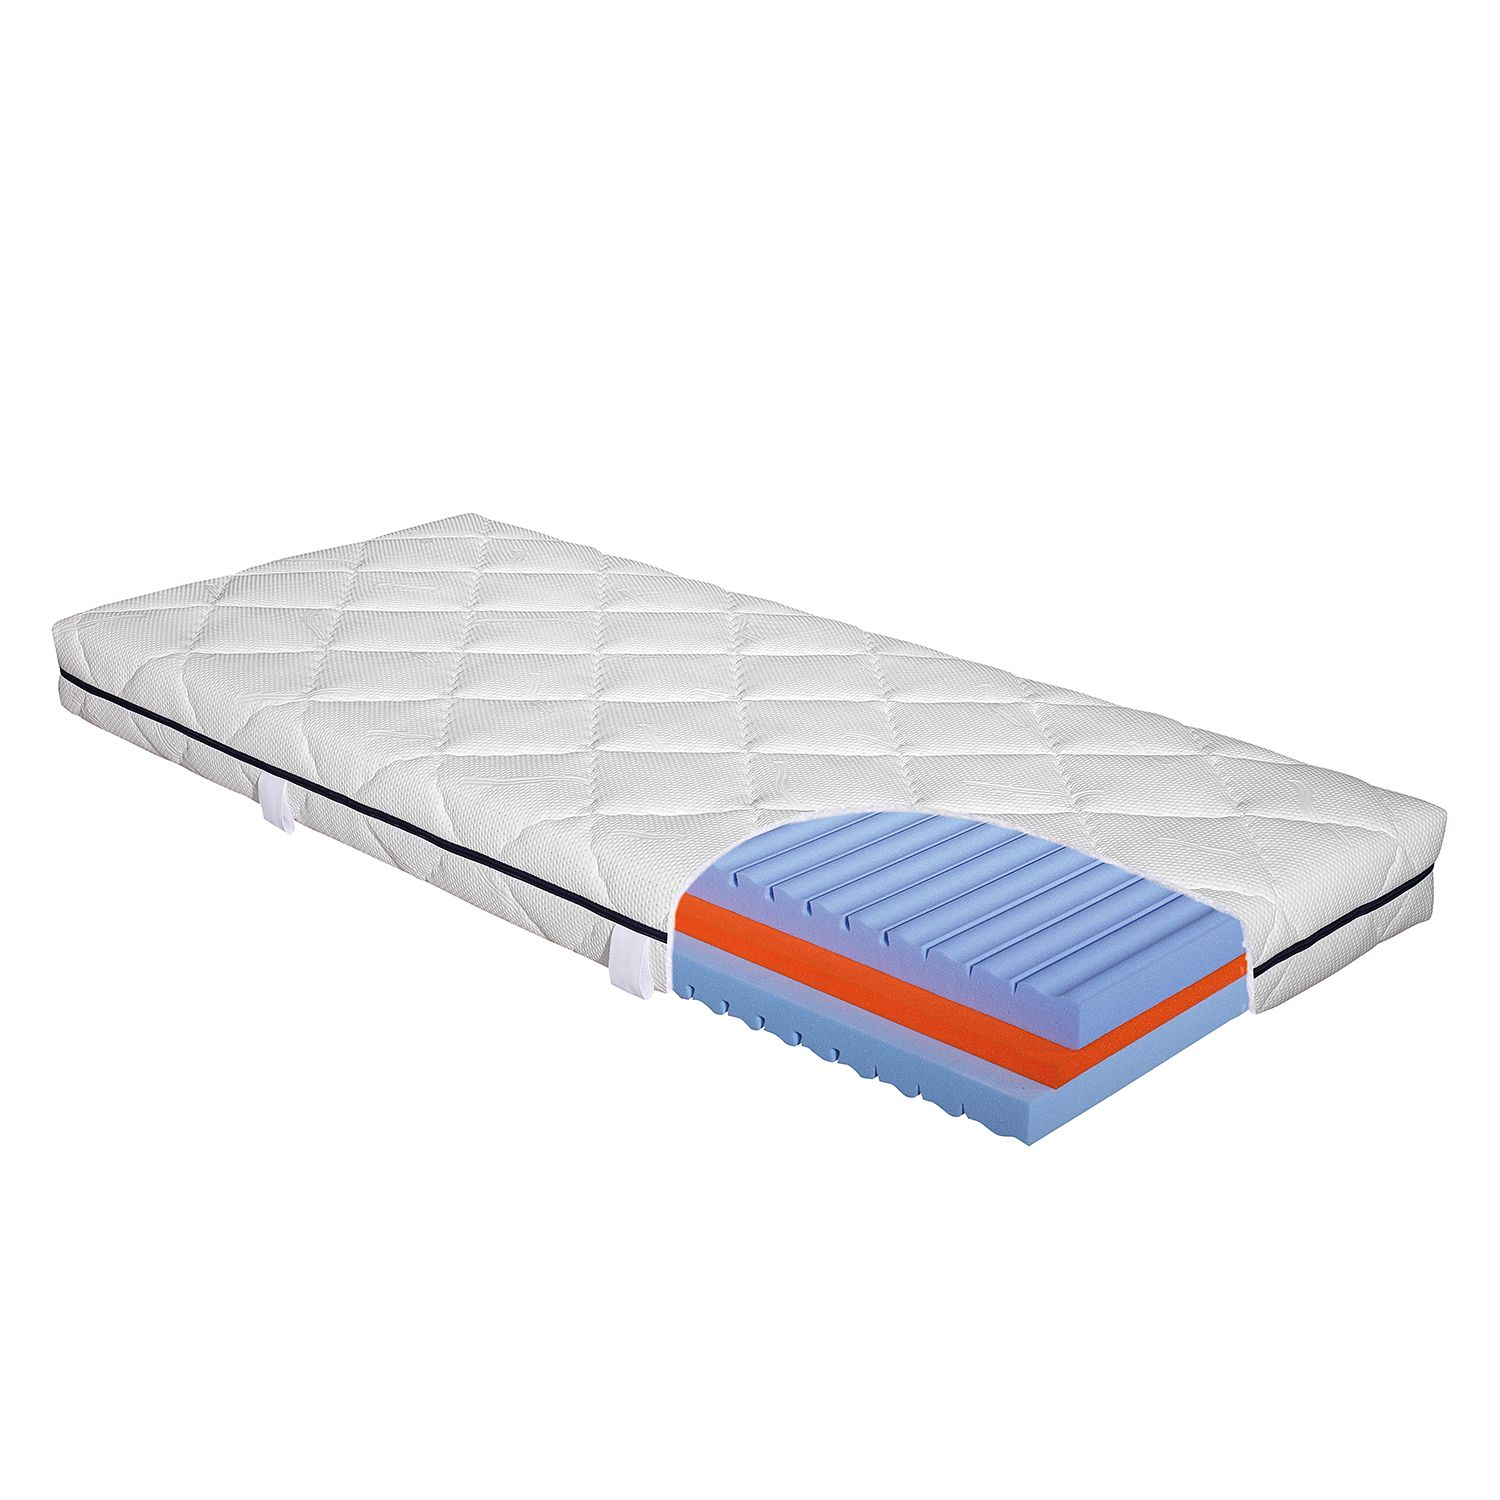 Matelas en mousse froide I Waterlily - 180 x 200cm, Hn8 Schlafsysteme